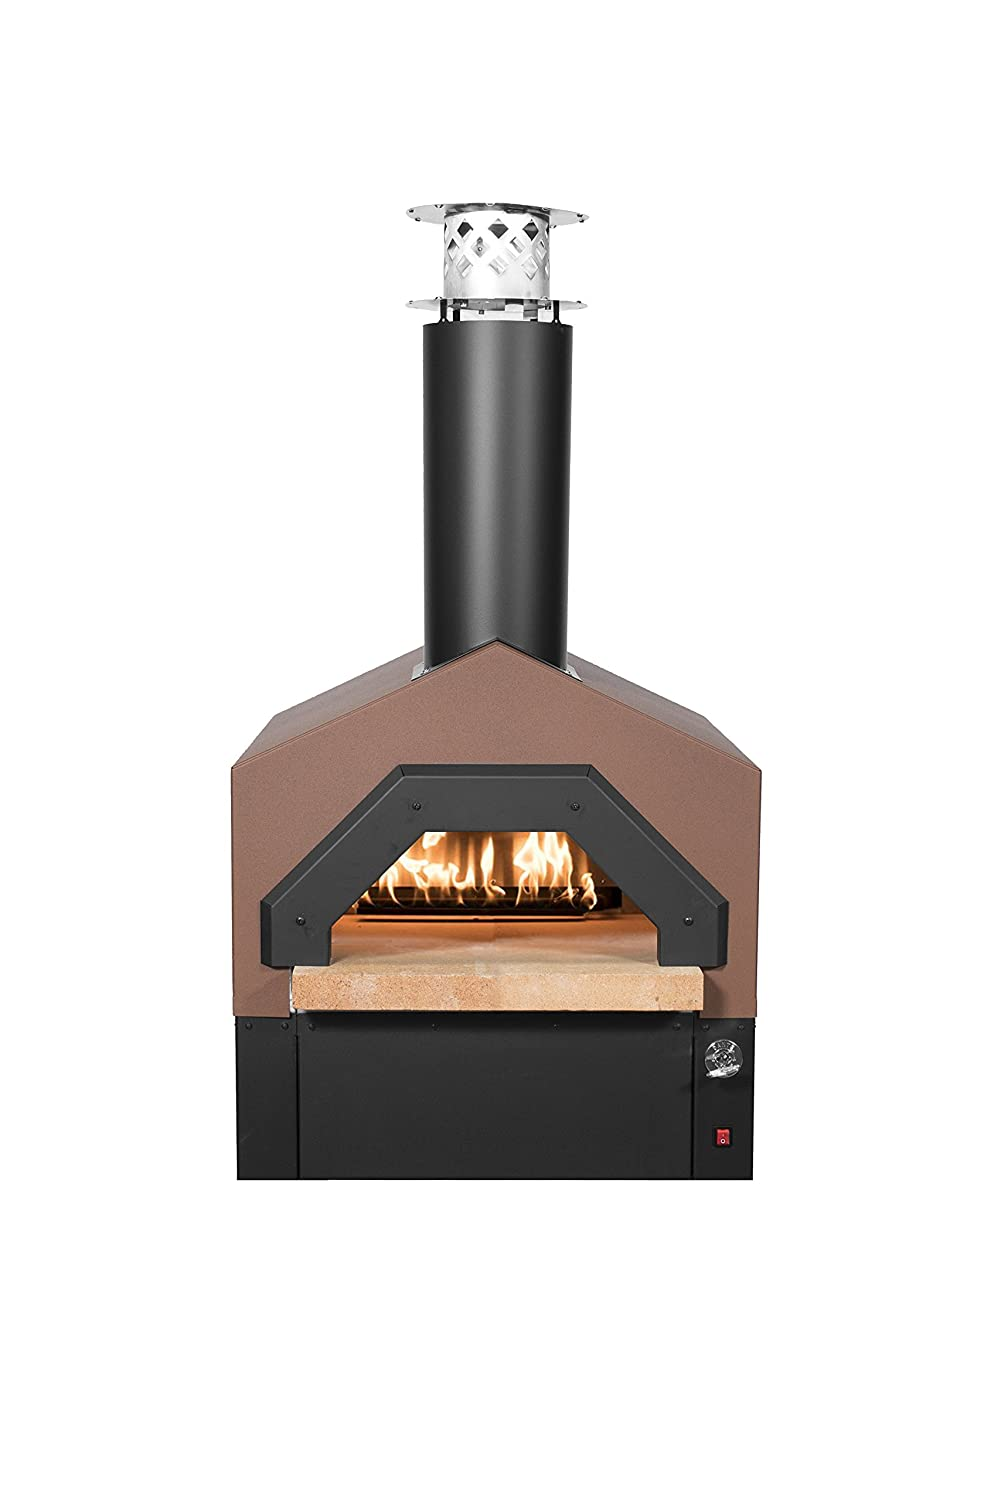 Chicago Brick Oven Americano Wood-Fired Outdoor Pizza Oven Hybrid, Countertop (Propane Gas, Terra Cotta)